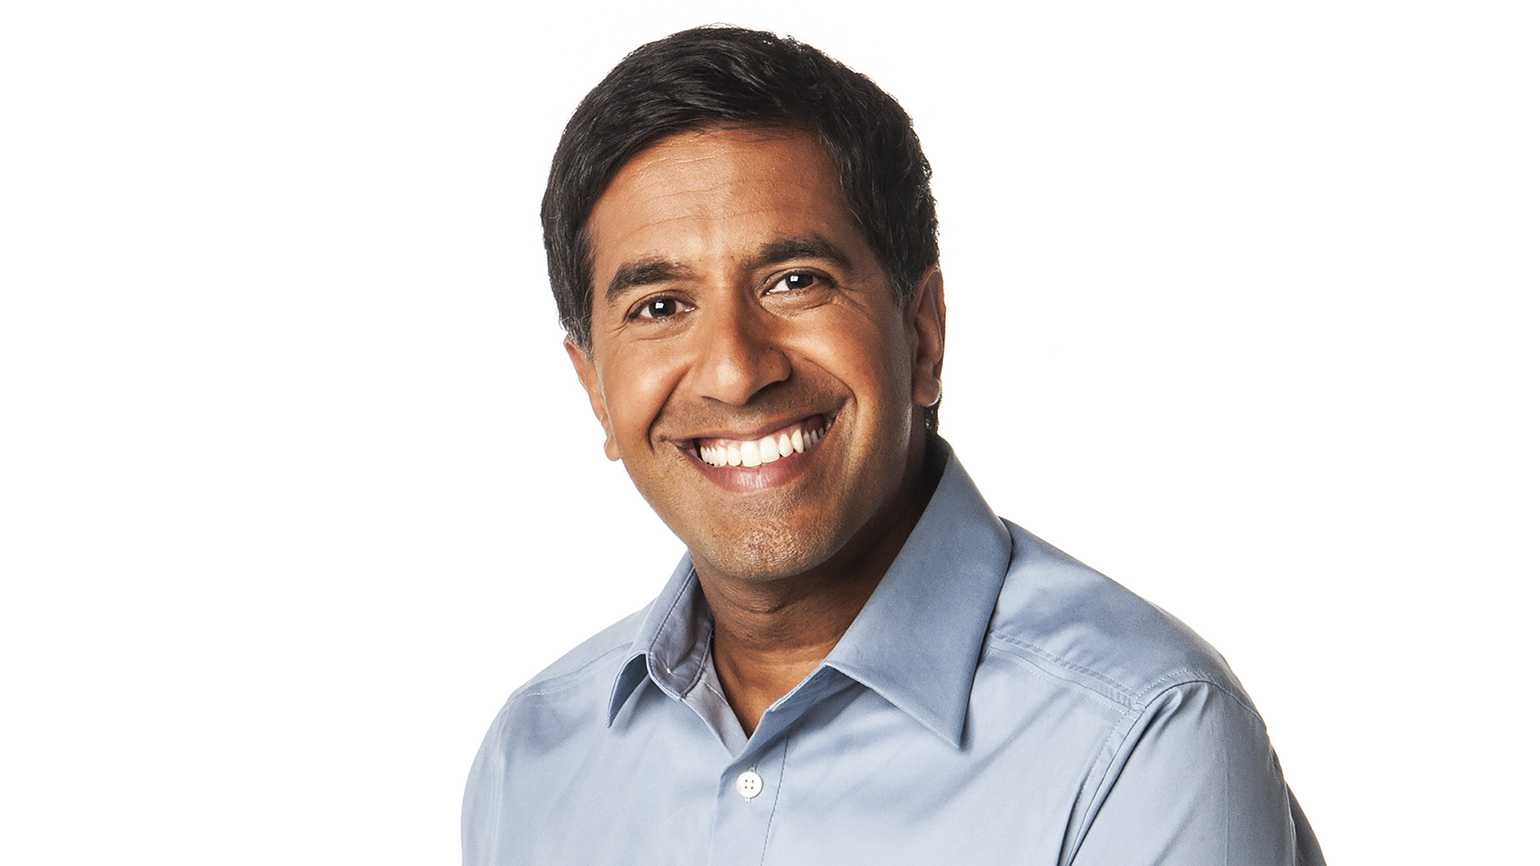 Sanjay Gupta tells his inspiring story, Guideposts